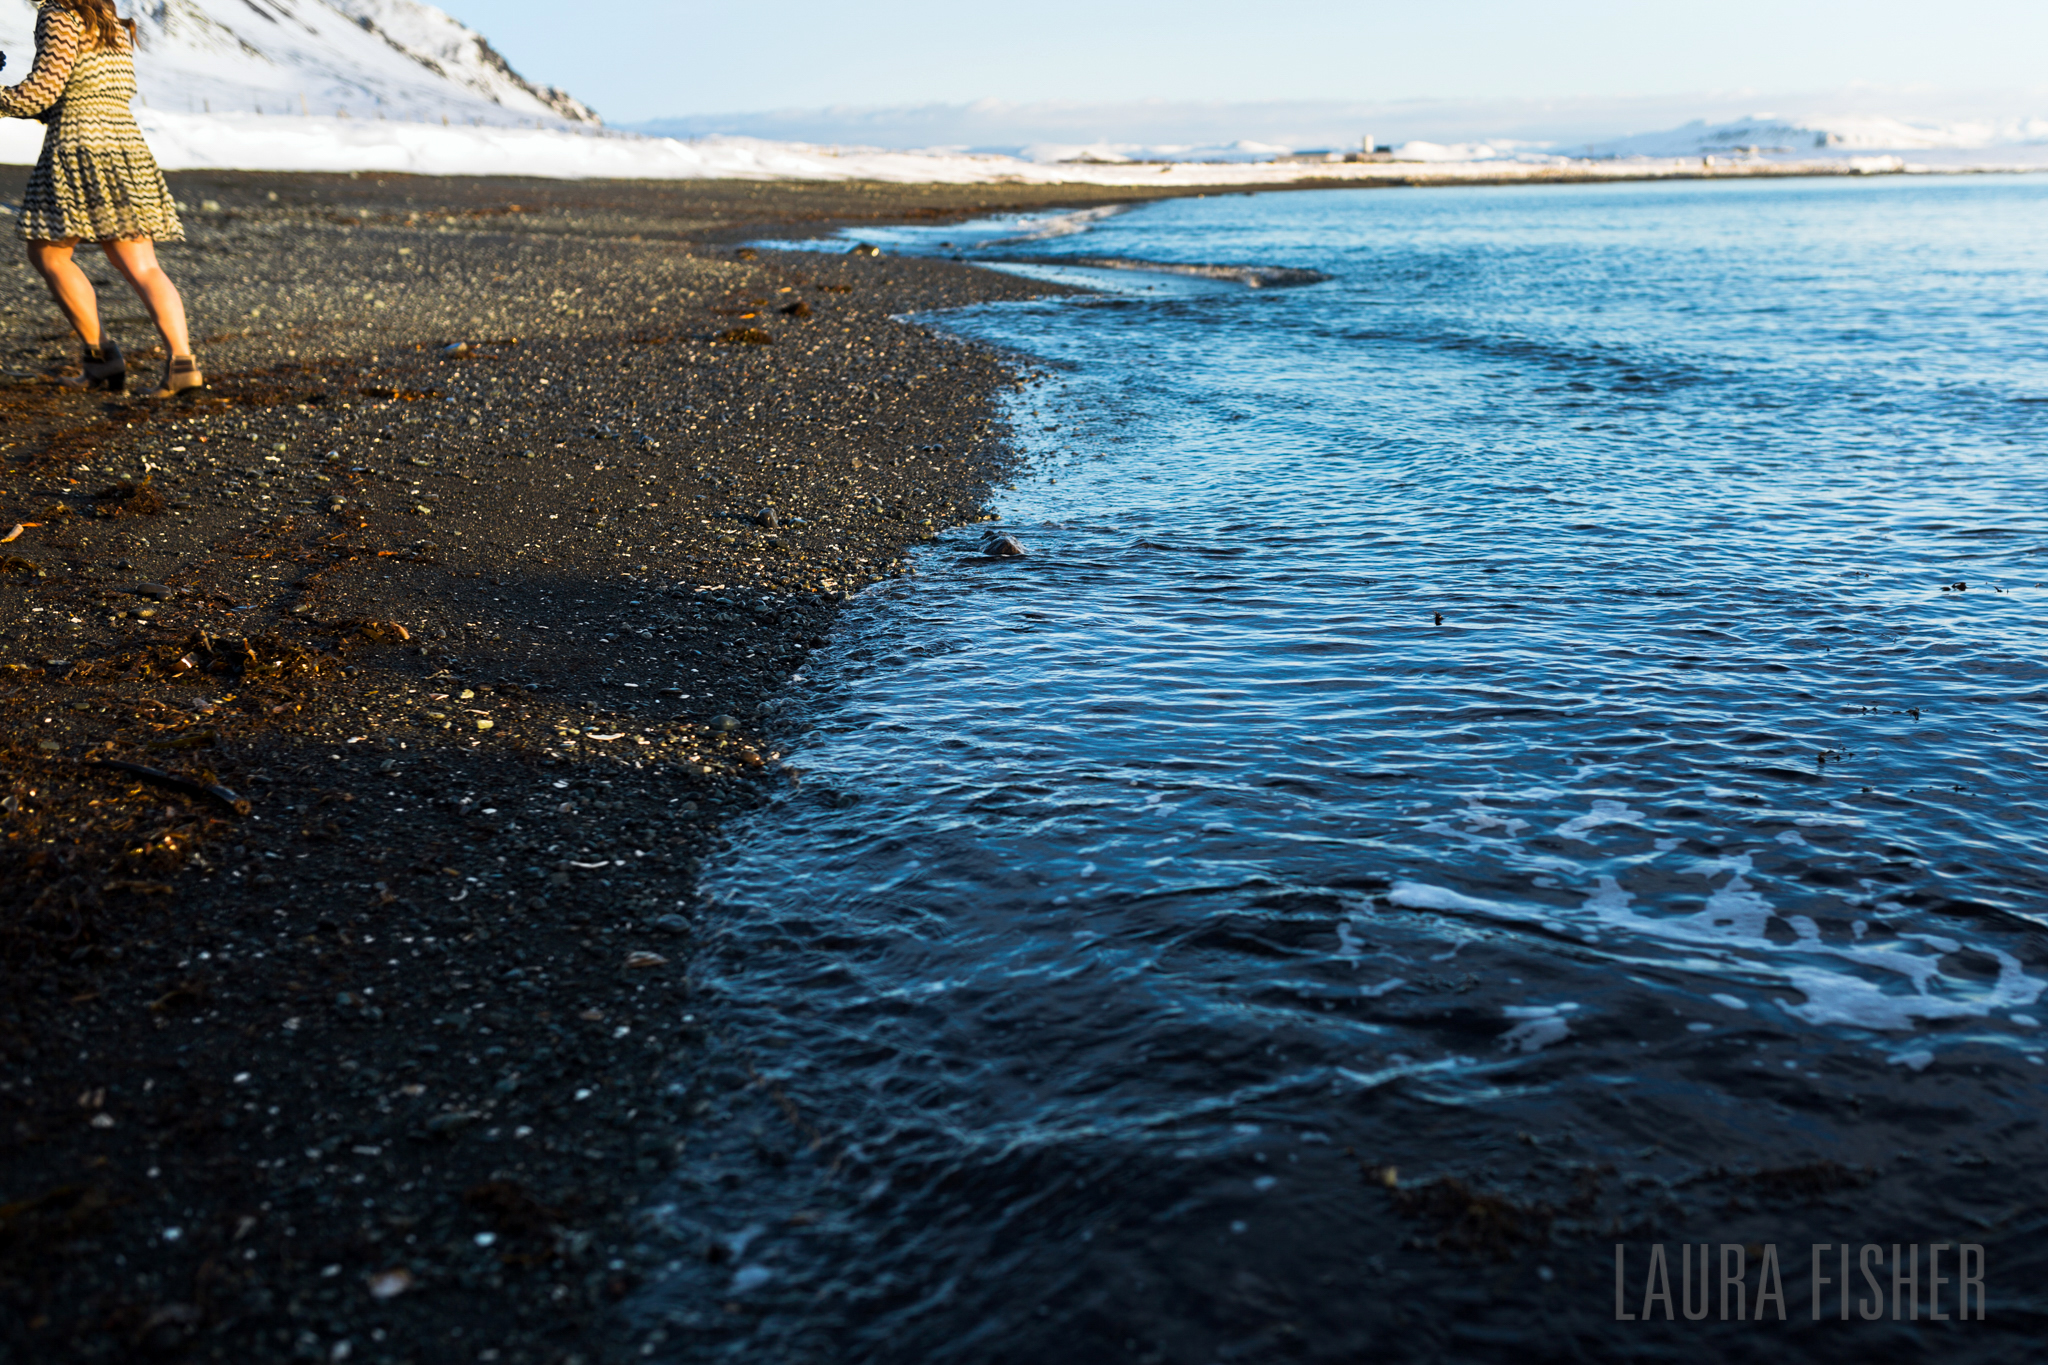 iceland-black-sand-beach-engagement-laura-fisher-photography-0014-2.jpg